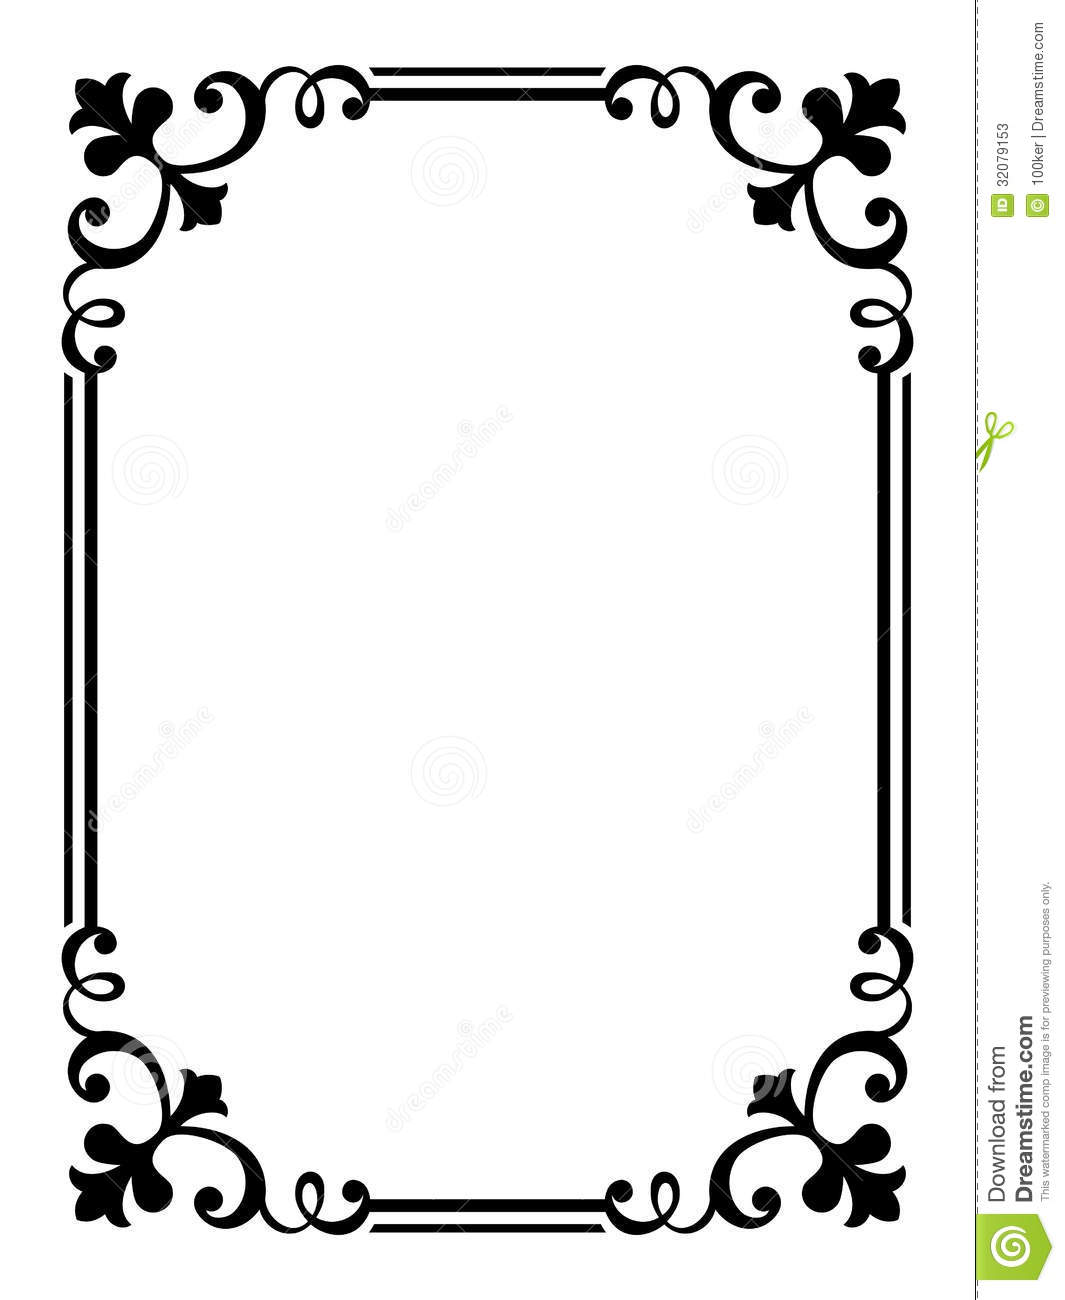 calligraphy penmanship curly baroque frame black stock photos image 32079153. Black Bedroom Furniture Sets. Home Design Ideas